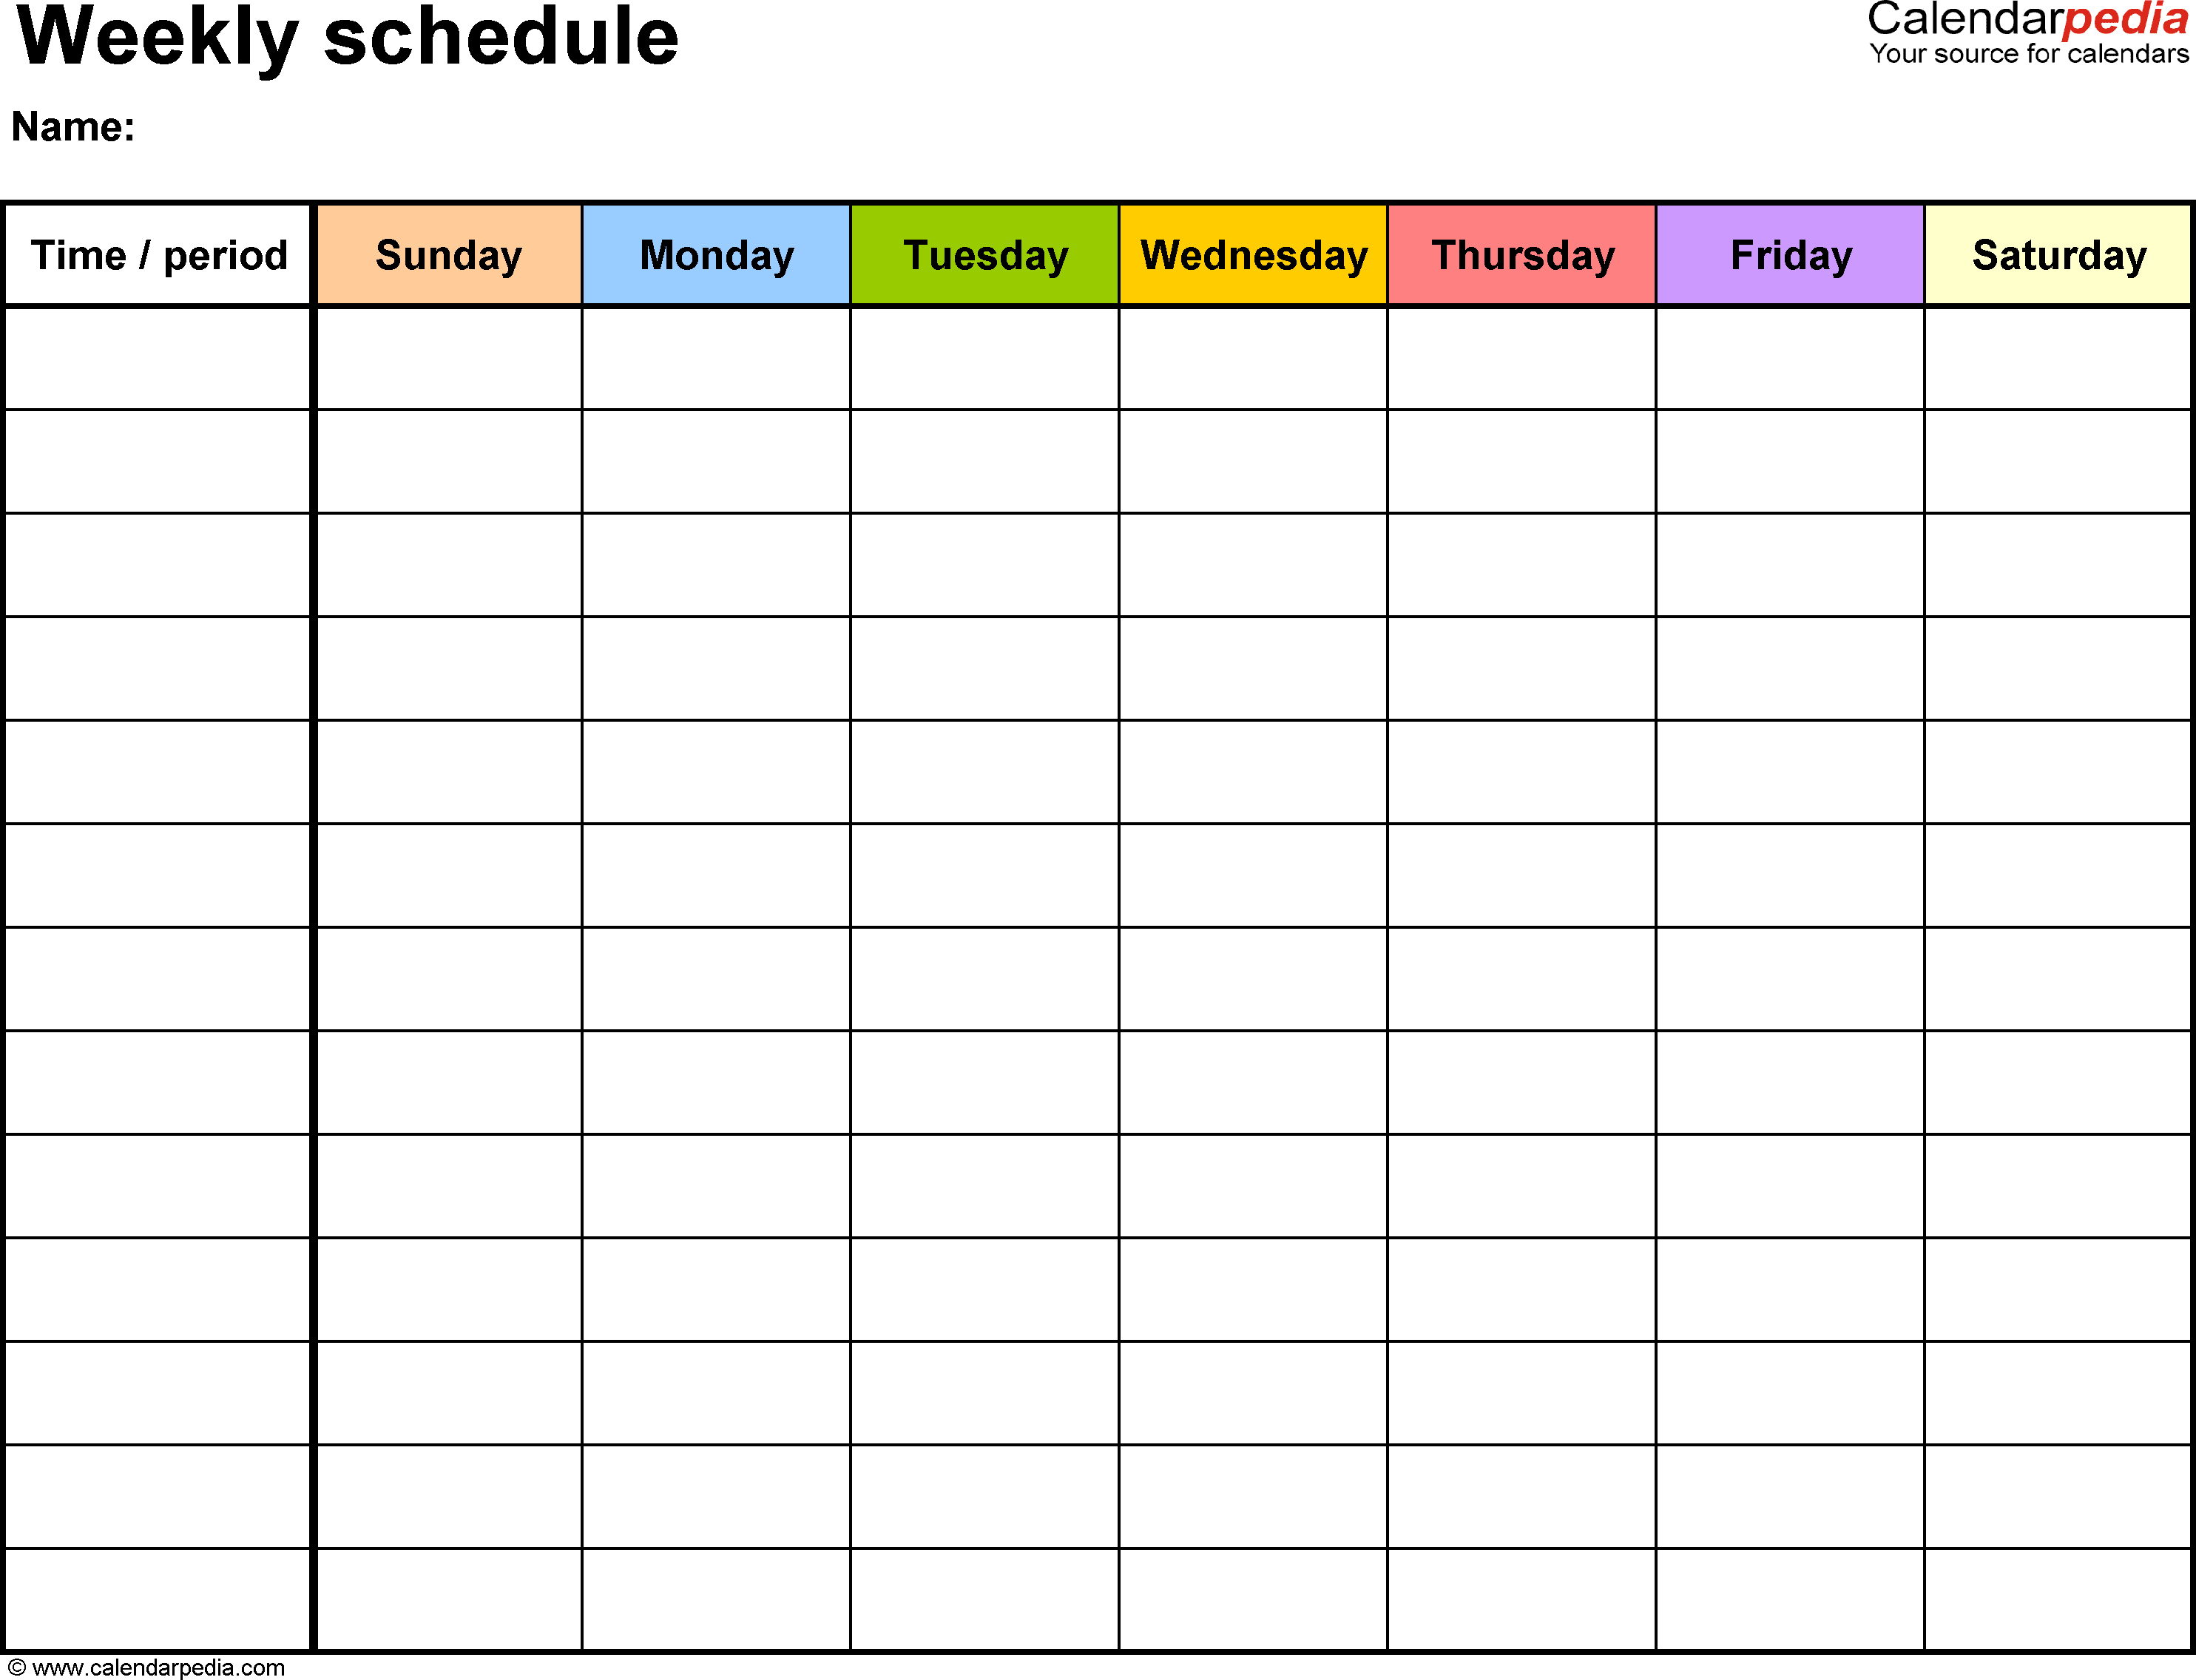 Weekly Schedule Template For Pdf Version 13: Landscape, 1 inside Weekly Calendar With Time Slots Pdf